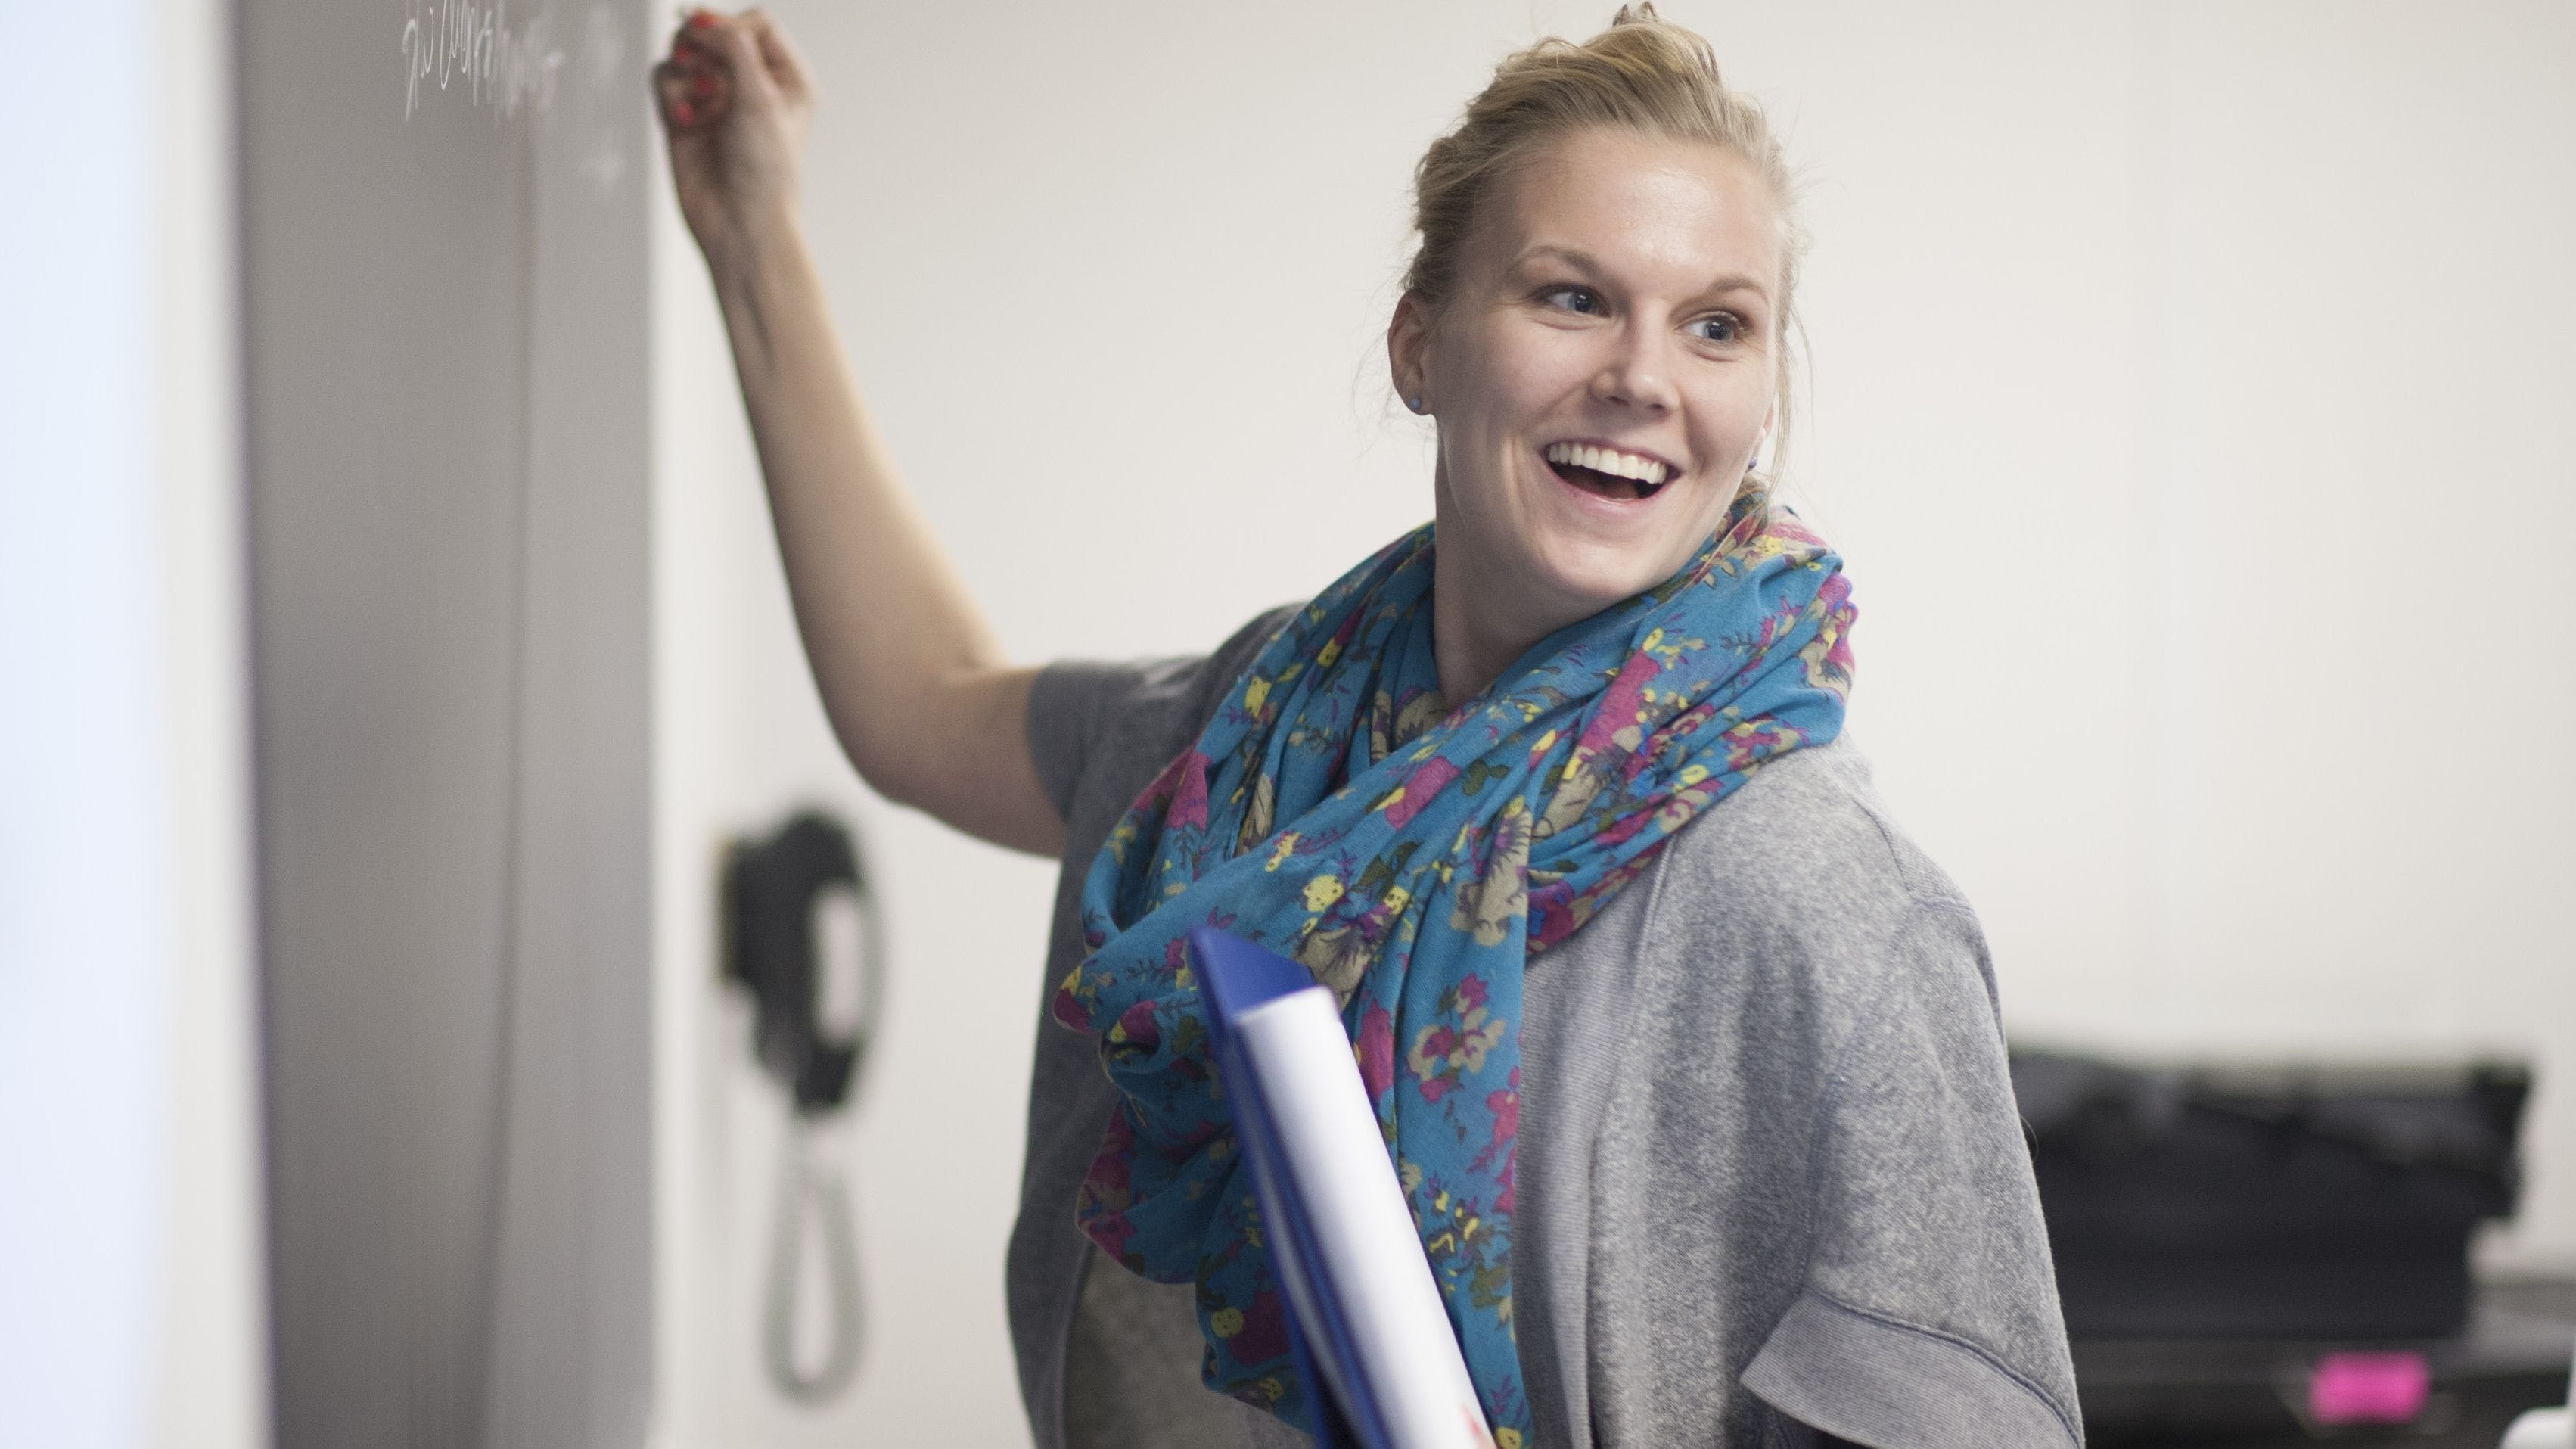 A student participates in a class activity.